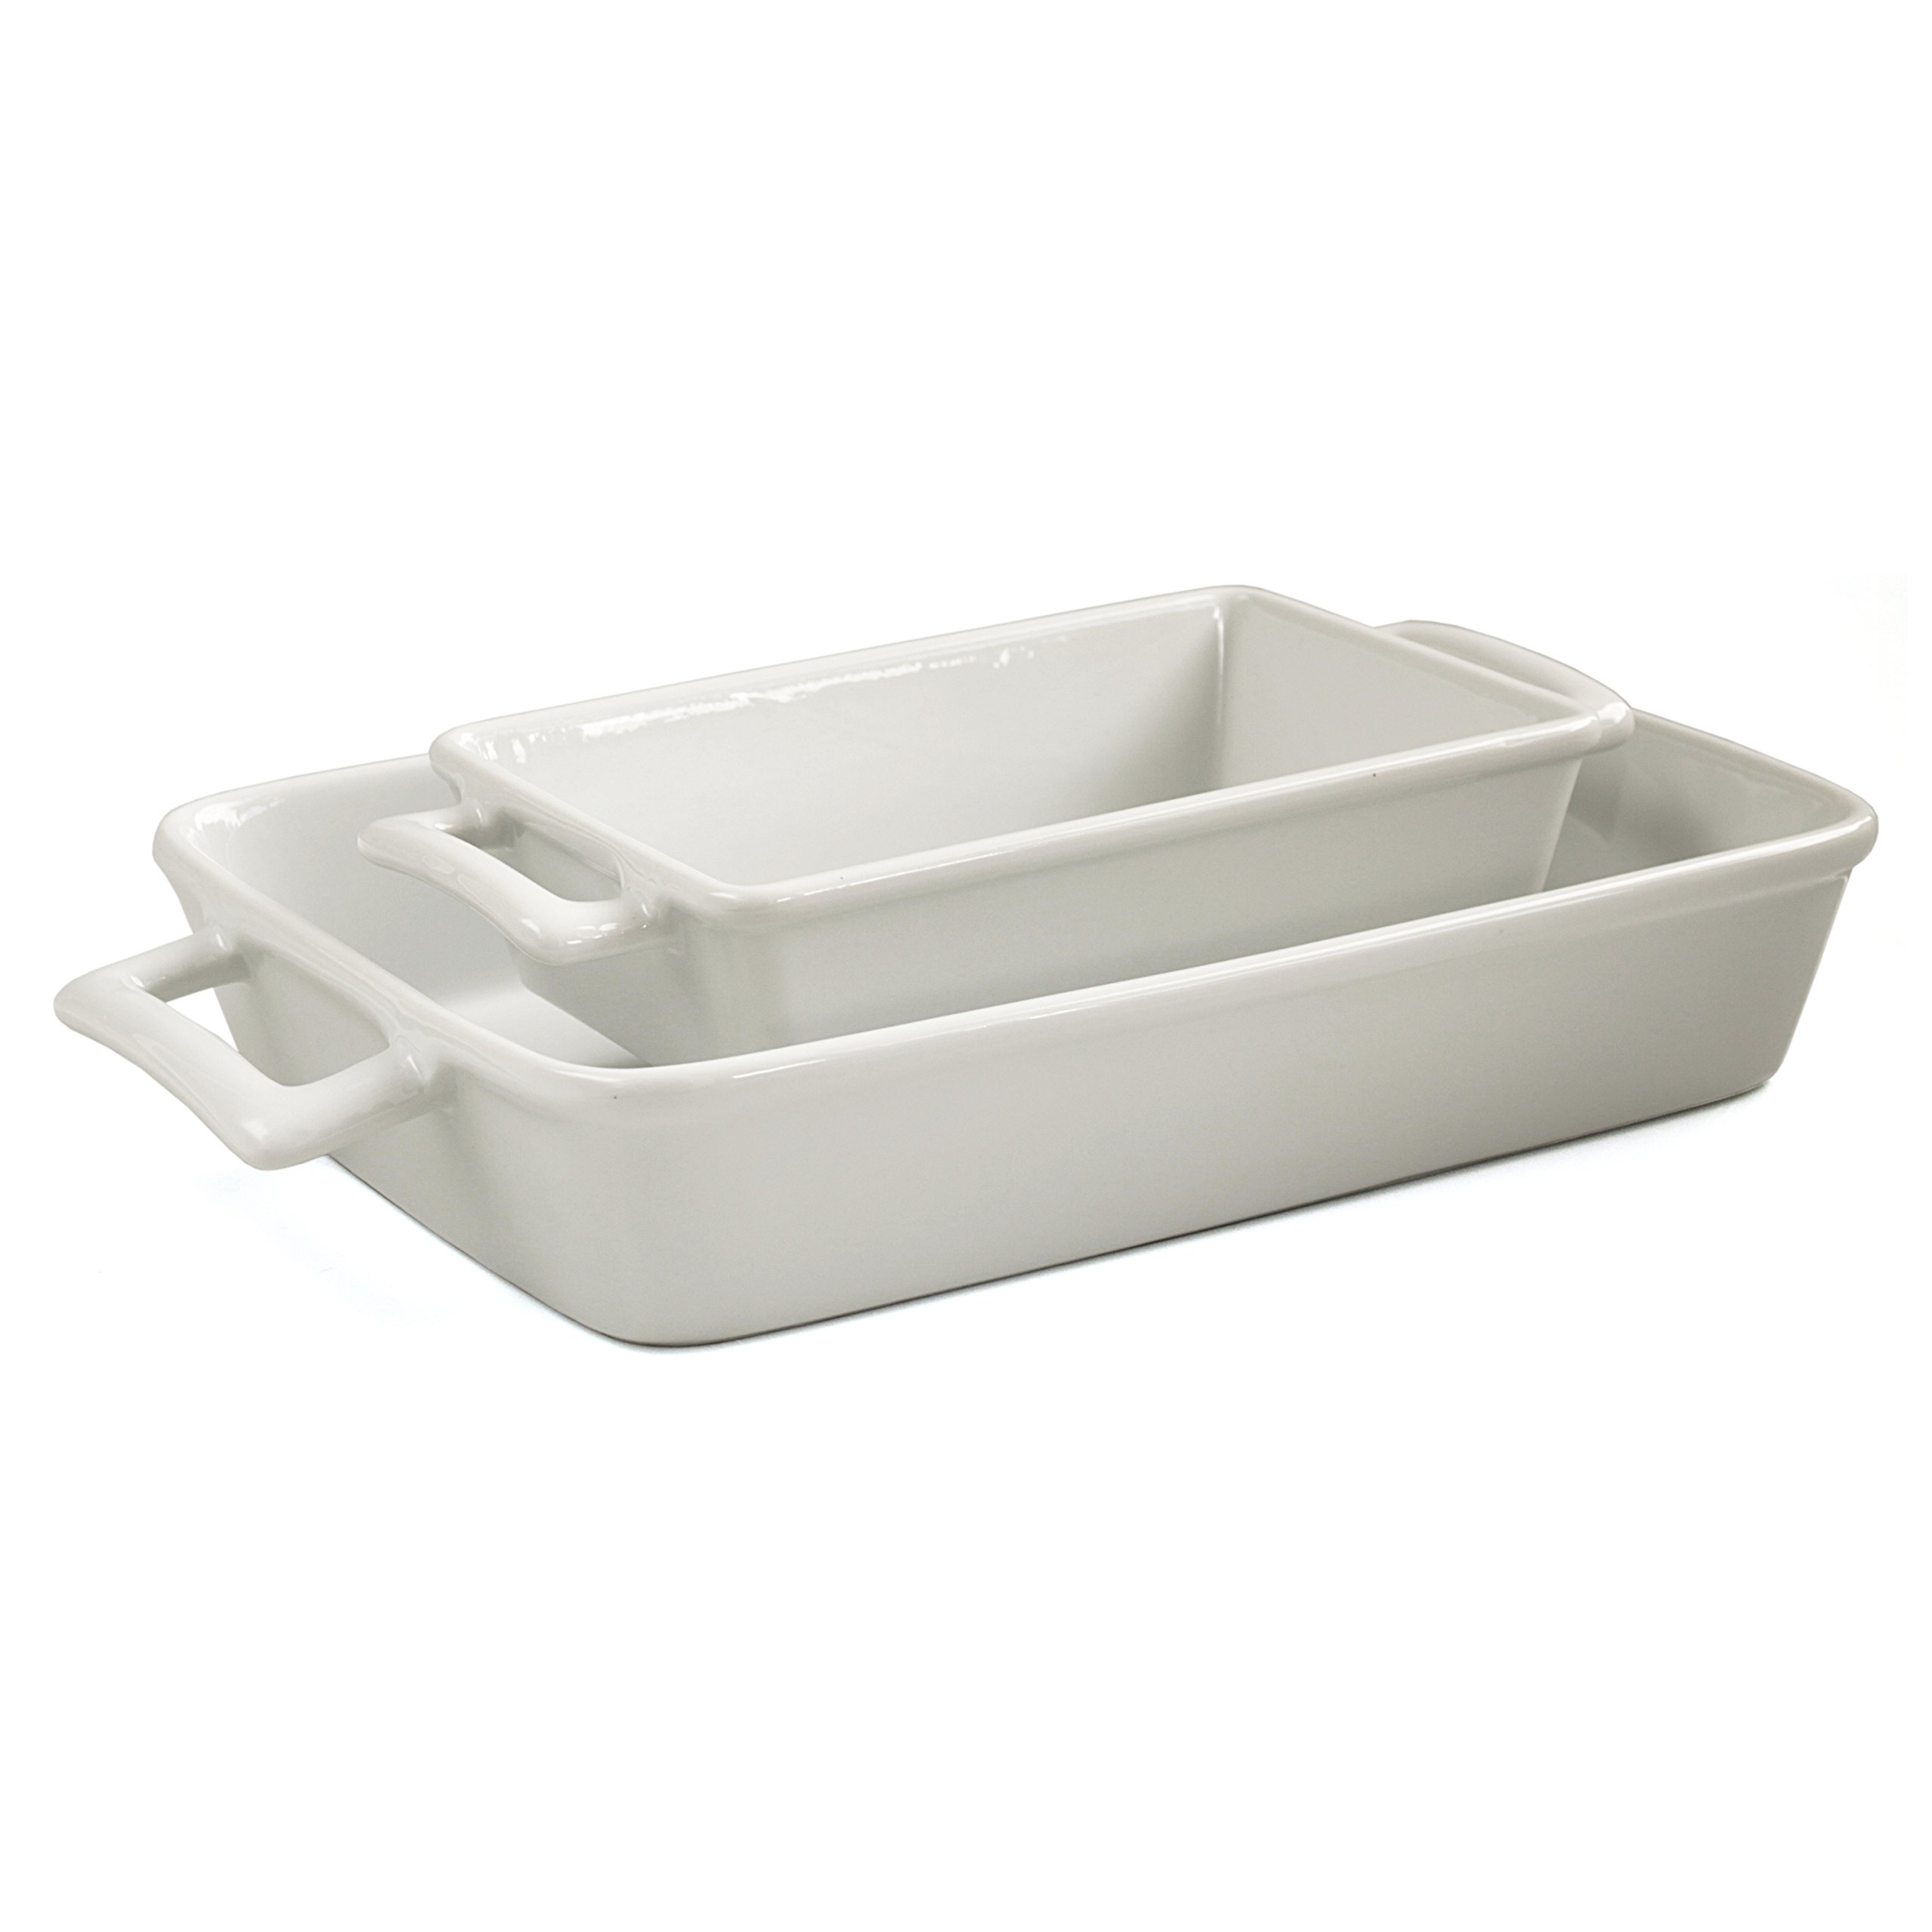 HIC Harold Import Co White Porcelain 2 Piece Lasagna Pan Set